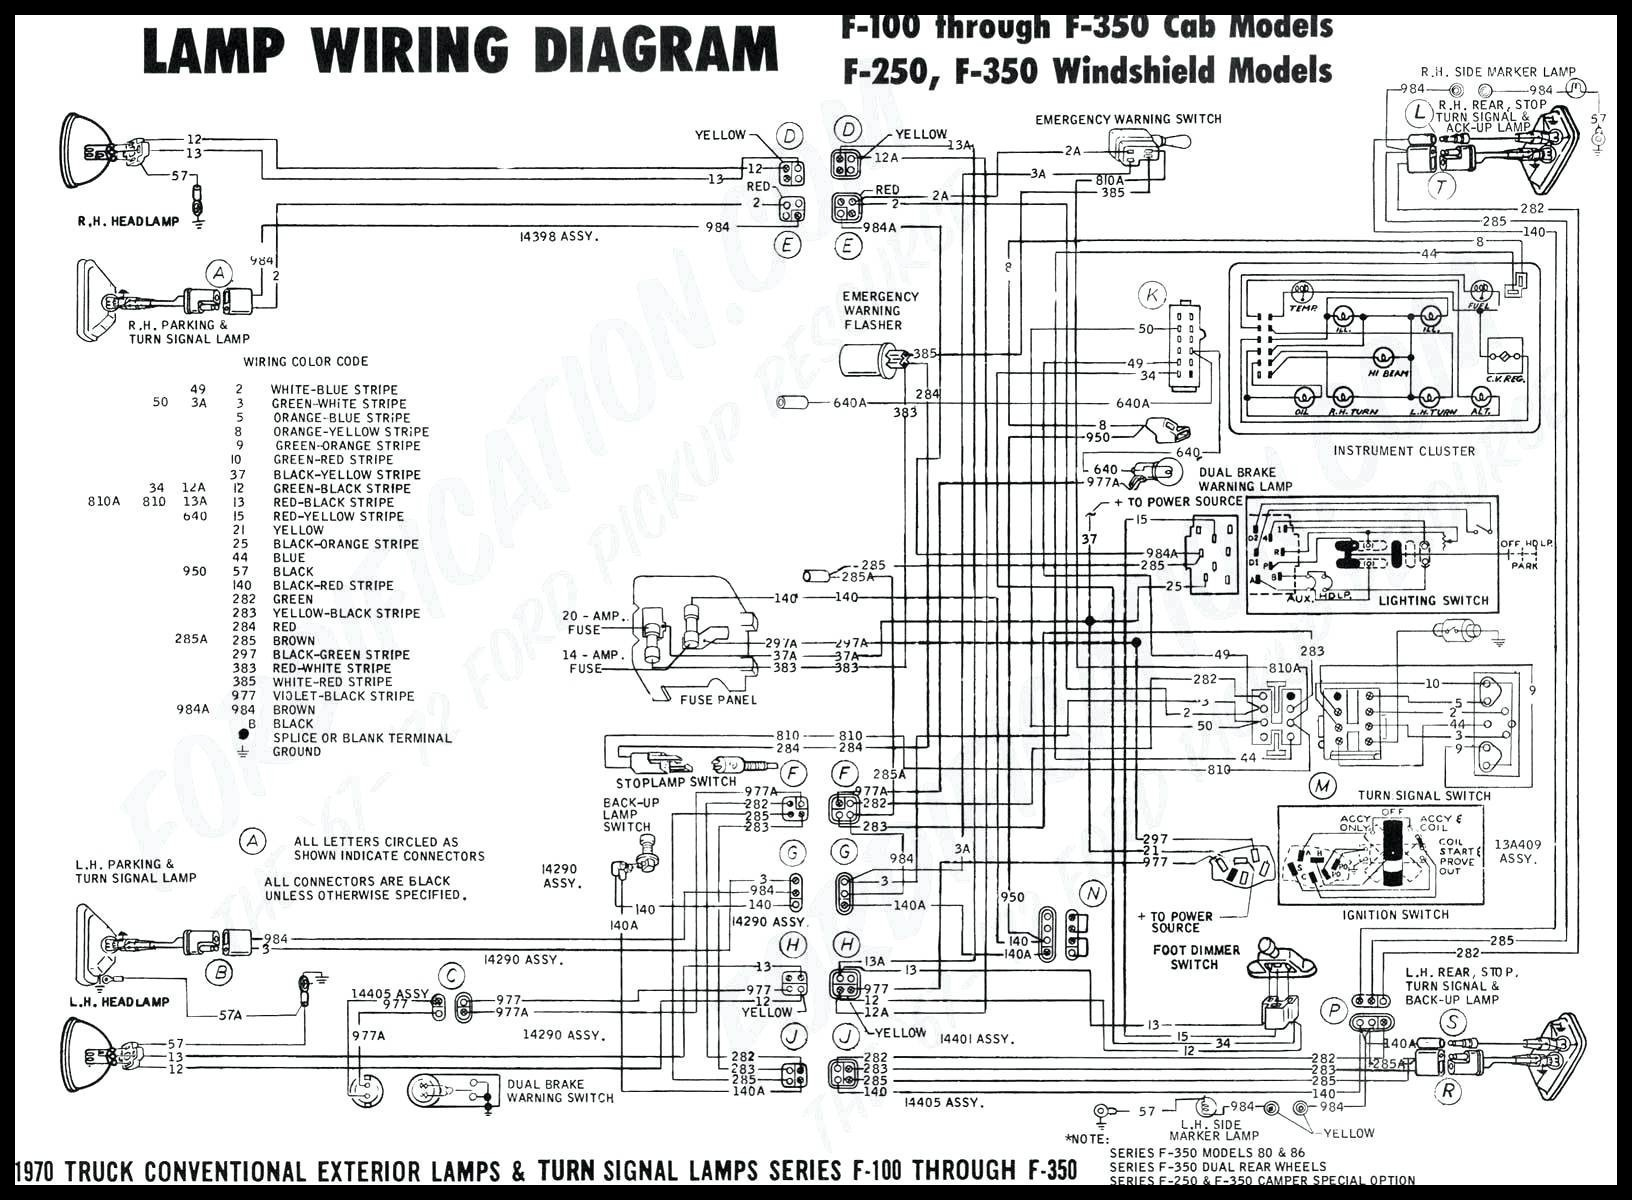 diagram fuse box diagram 91 toyota camry full version hd quality toyota camry acookdiagramin fotocomp it fuse box diagram 91 toyota camry full